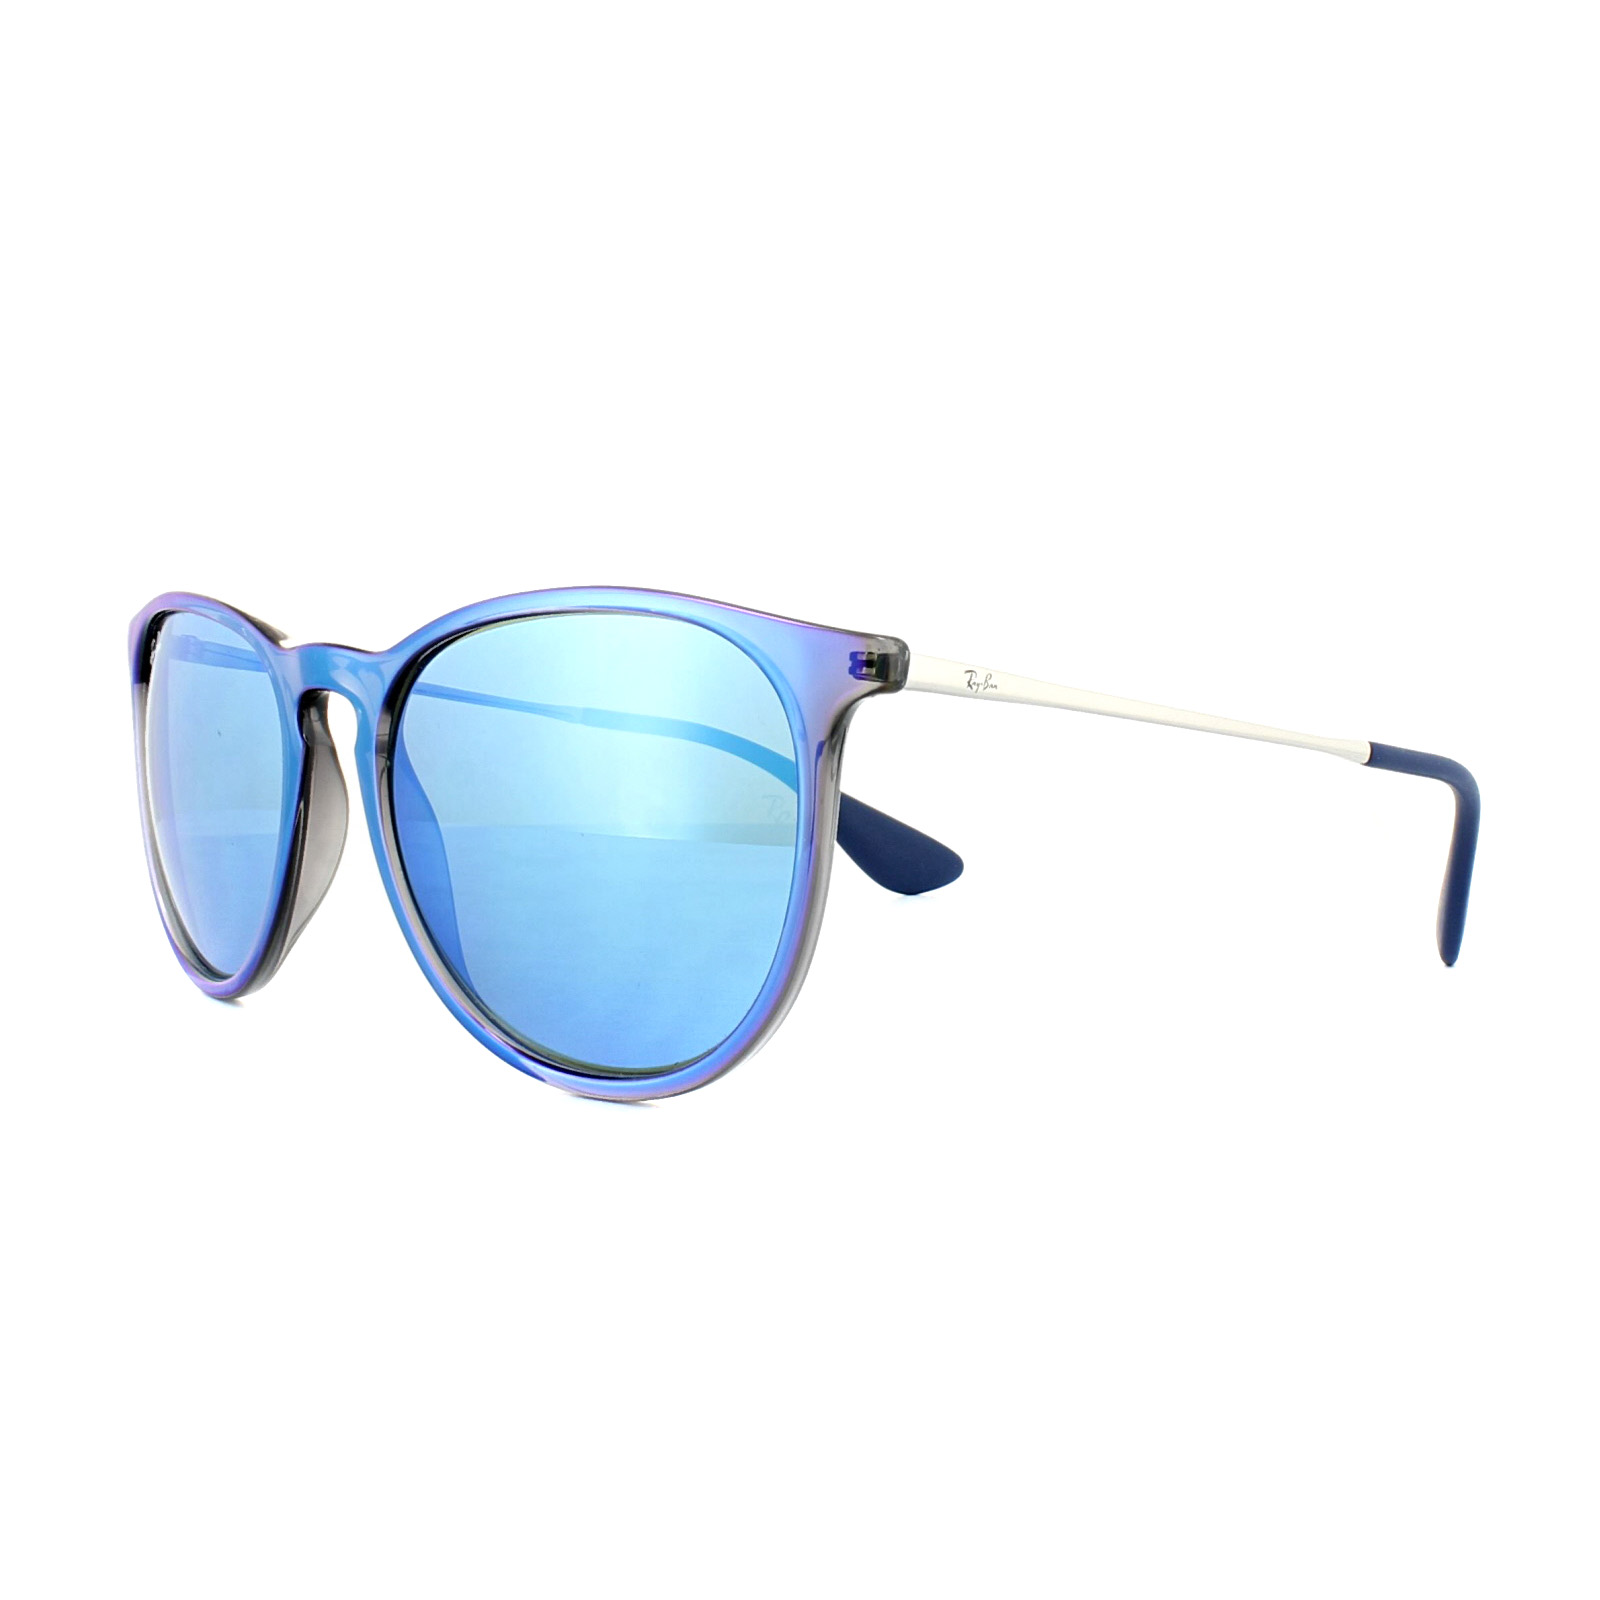 9bed144ca83 Sentinel Ray-Ban Sunglasses Erika 4171 631855 Blue Silver Blue Mirror